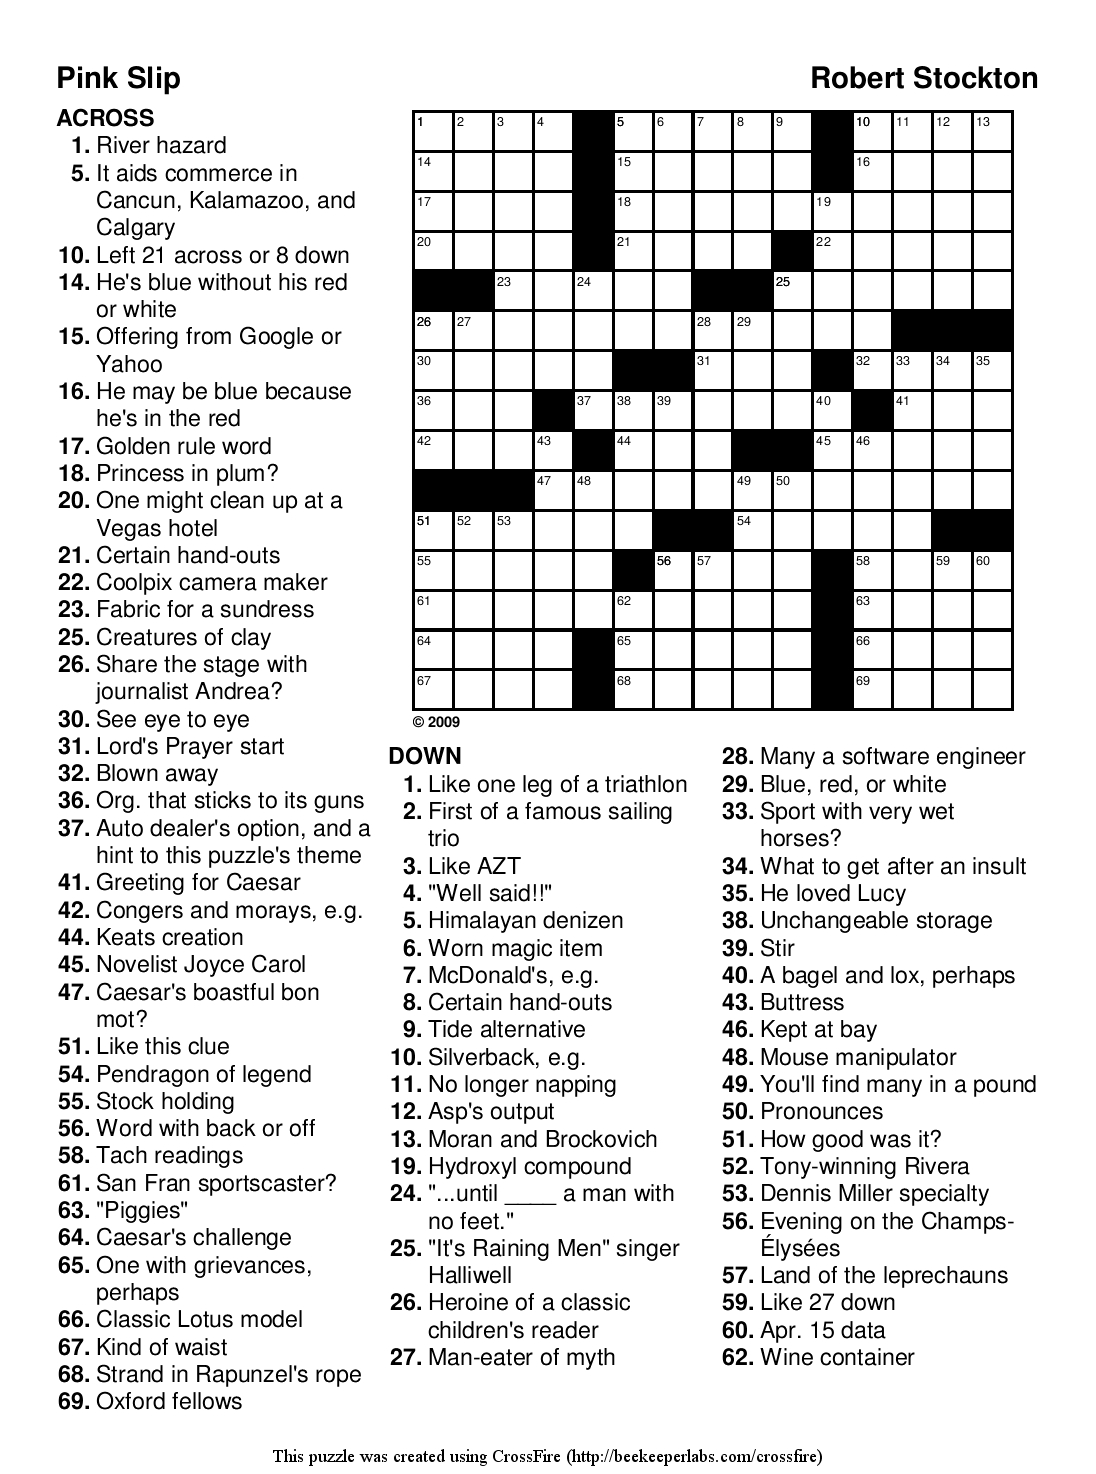 Easy Printable Crossword Puzzels - Infocap Ltd. - Printable Automotive Crossword Puzzles